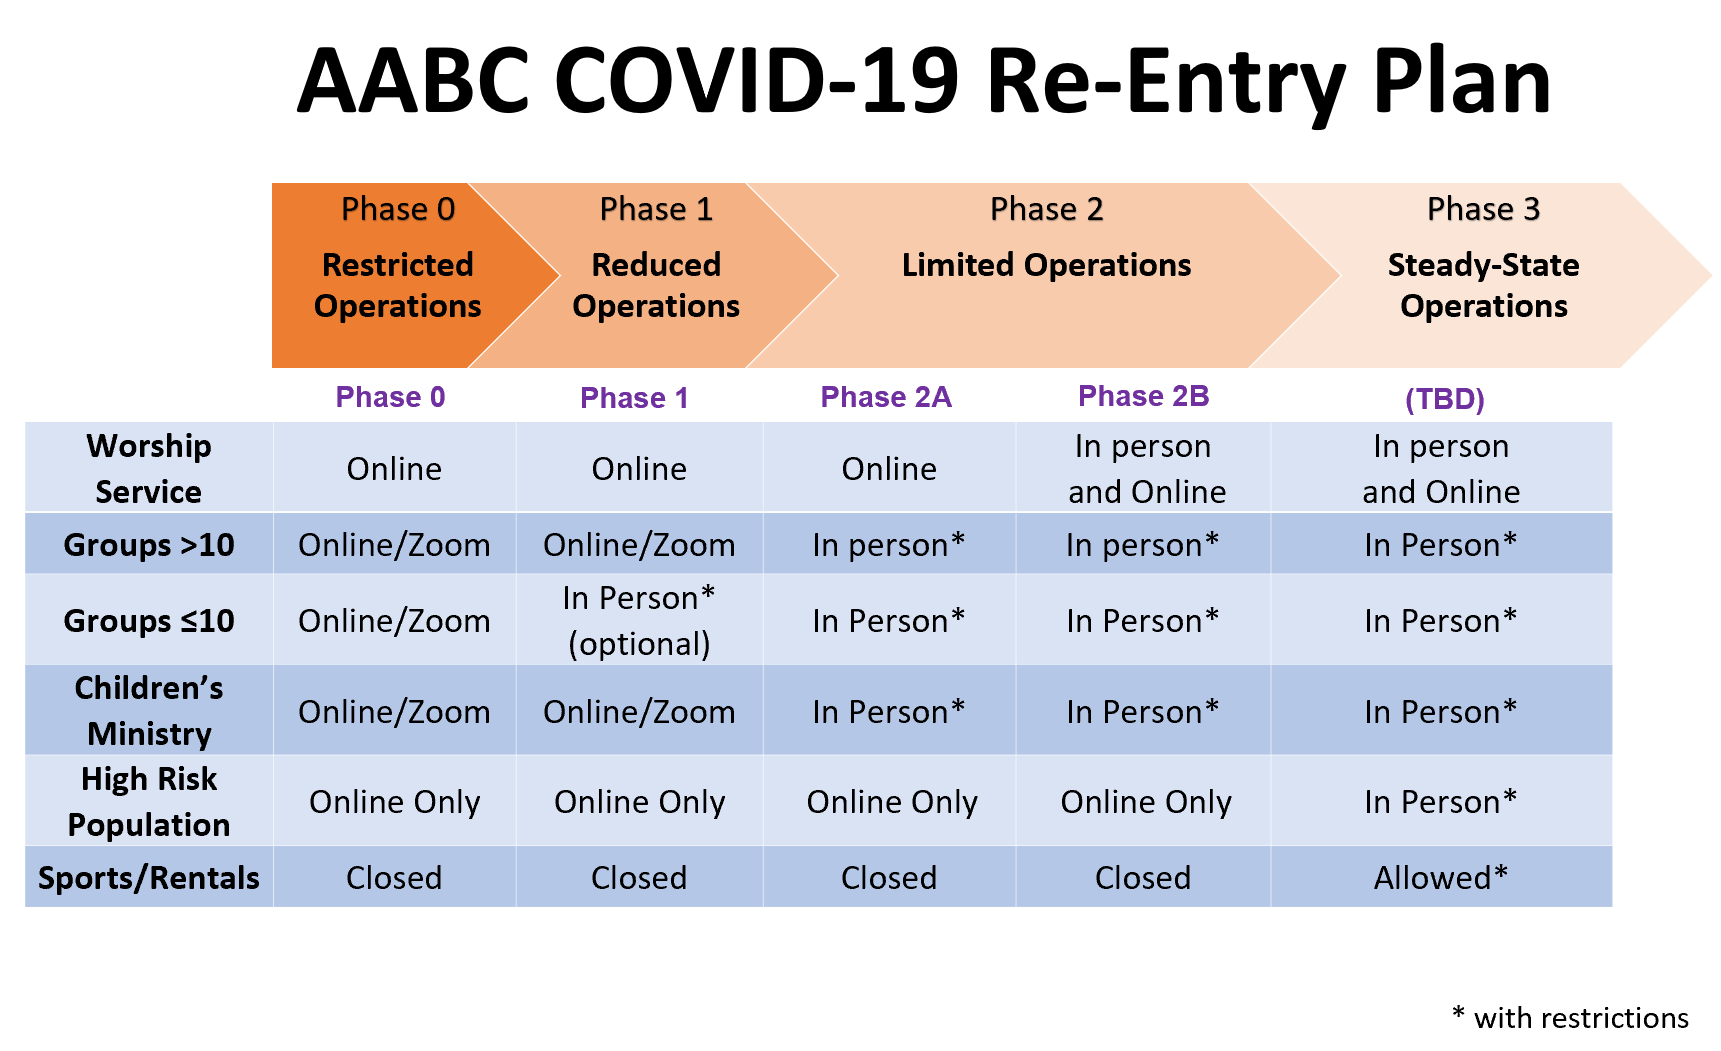 AABC Re-Entry Plan (12-17-2020).PNG